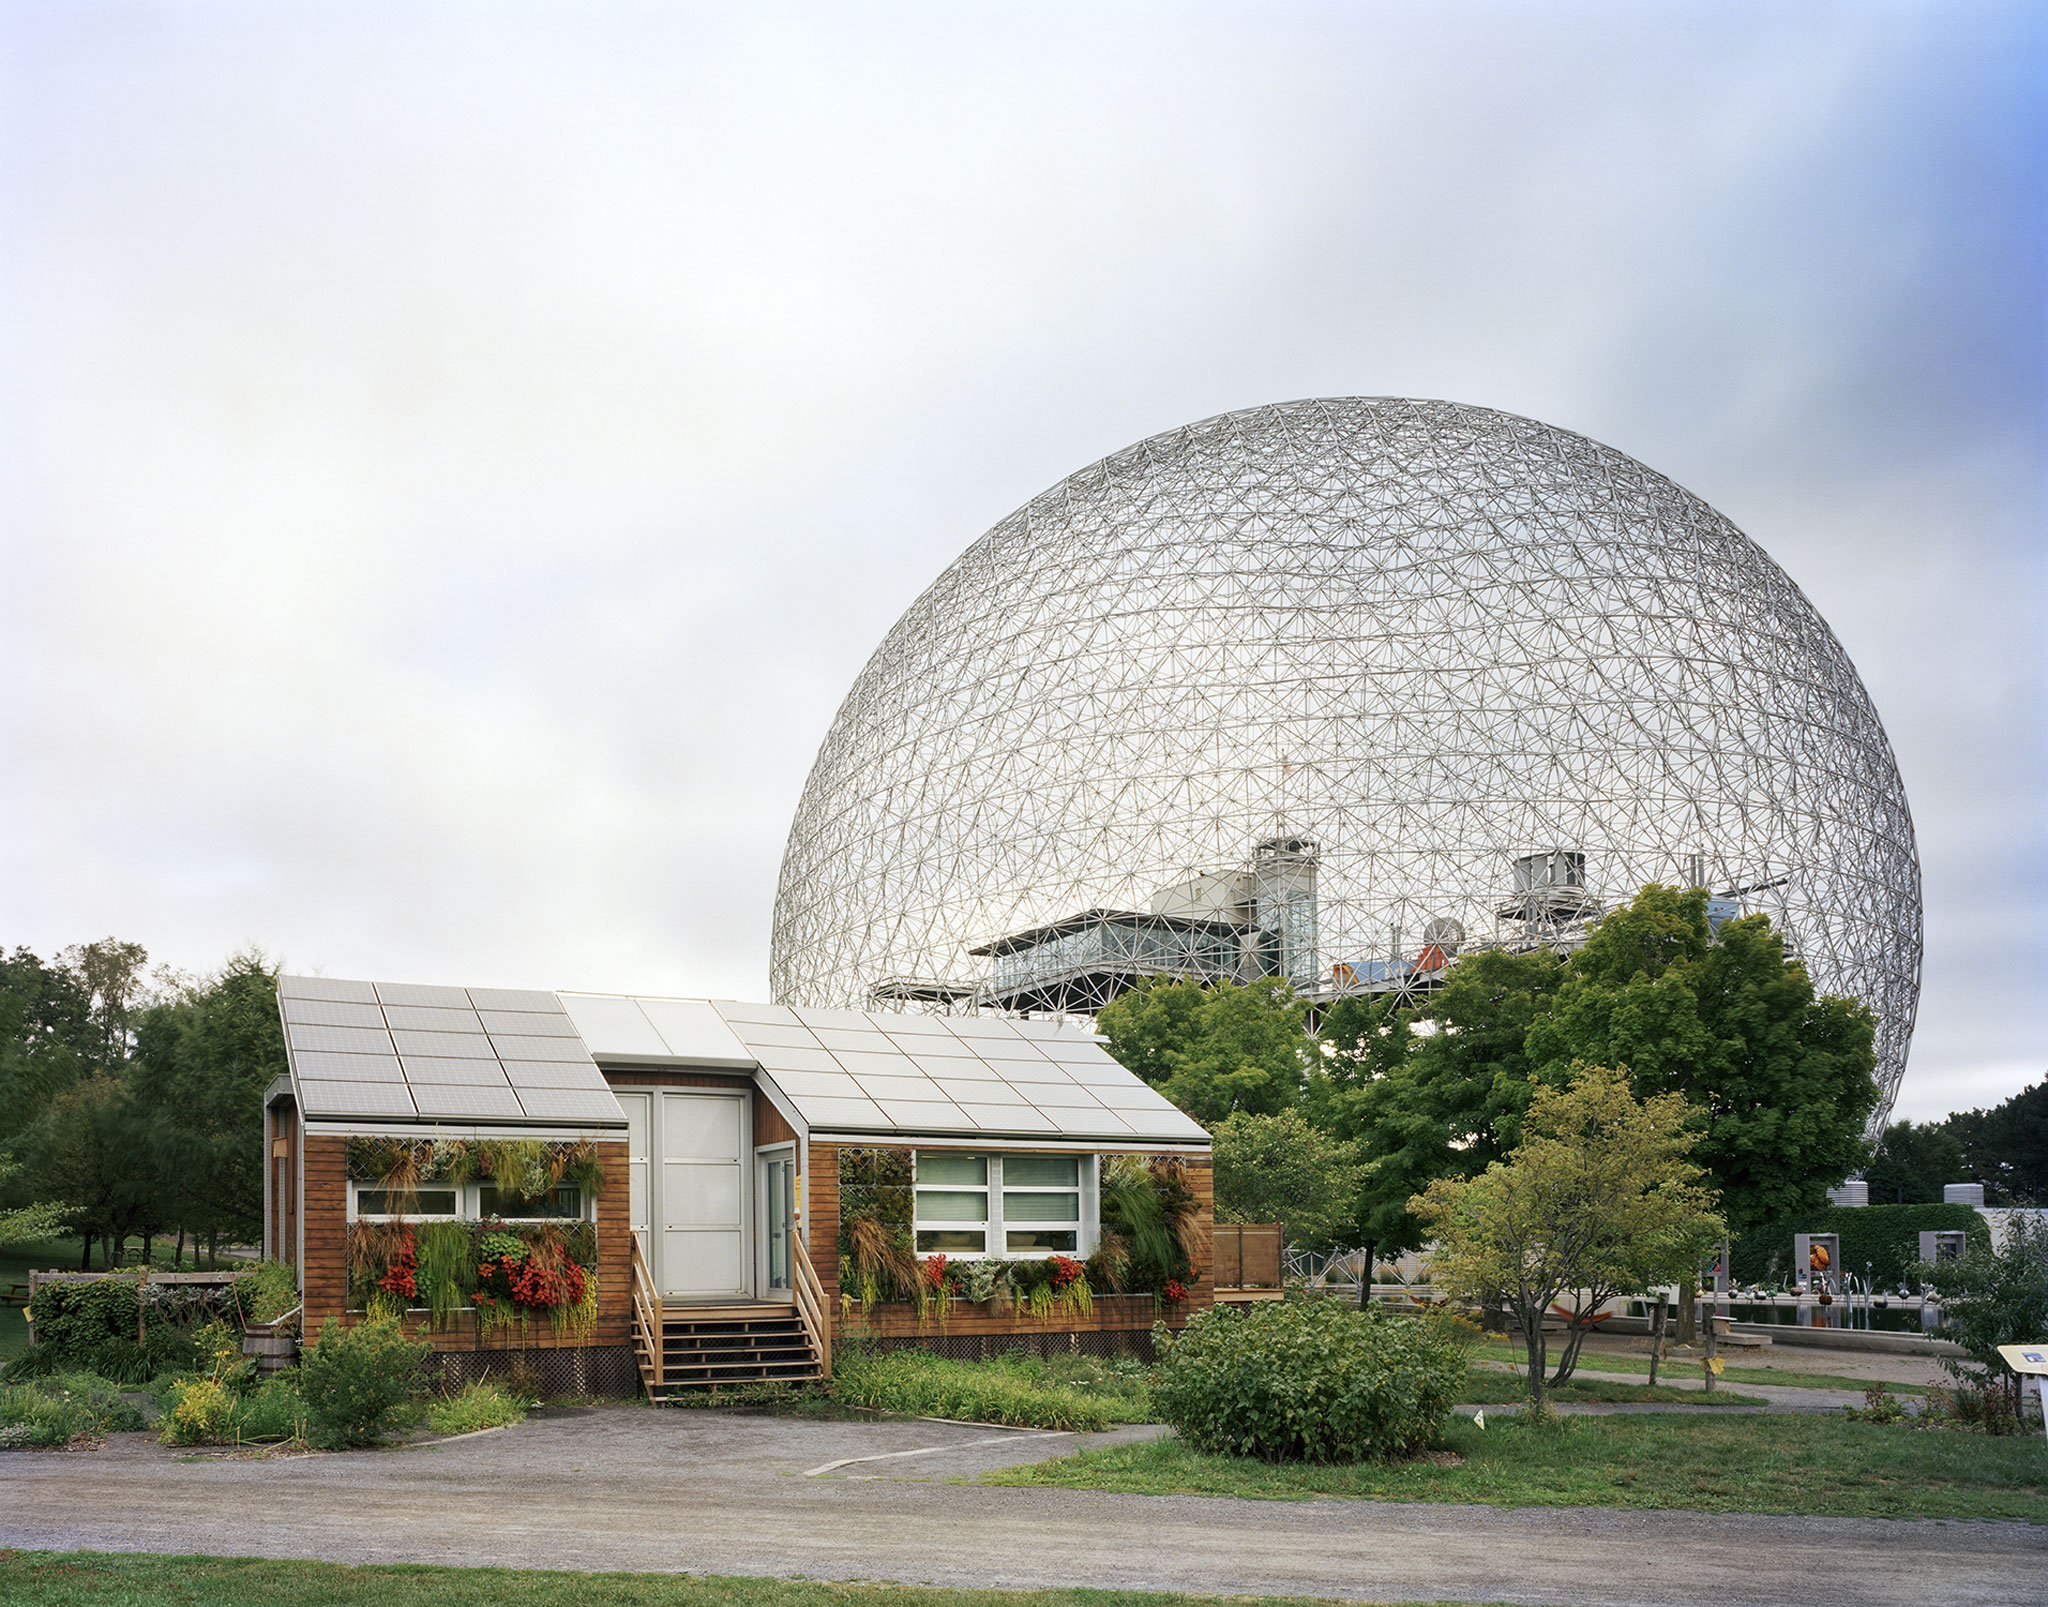 "Montreal 1967 World's Fair, ""Man and His World,"" Buckminster Fuller's Geodesic Dome With Solar Experimental House. Lost Utopias by Jade Doskow at the Front Room Gallery. Courtesy © 2018 Jade Doskow/ Front Room Gallery"